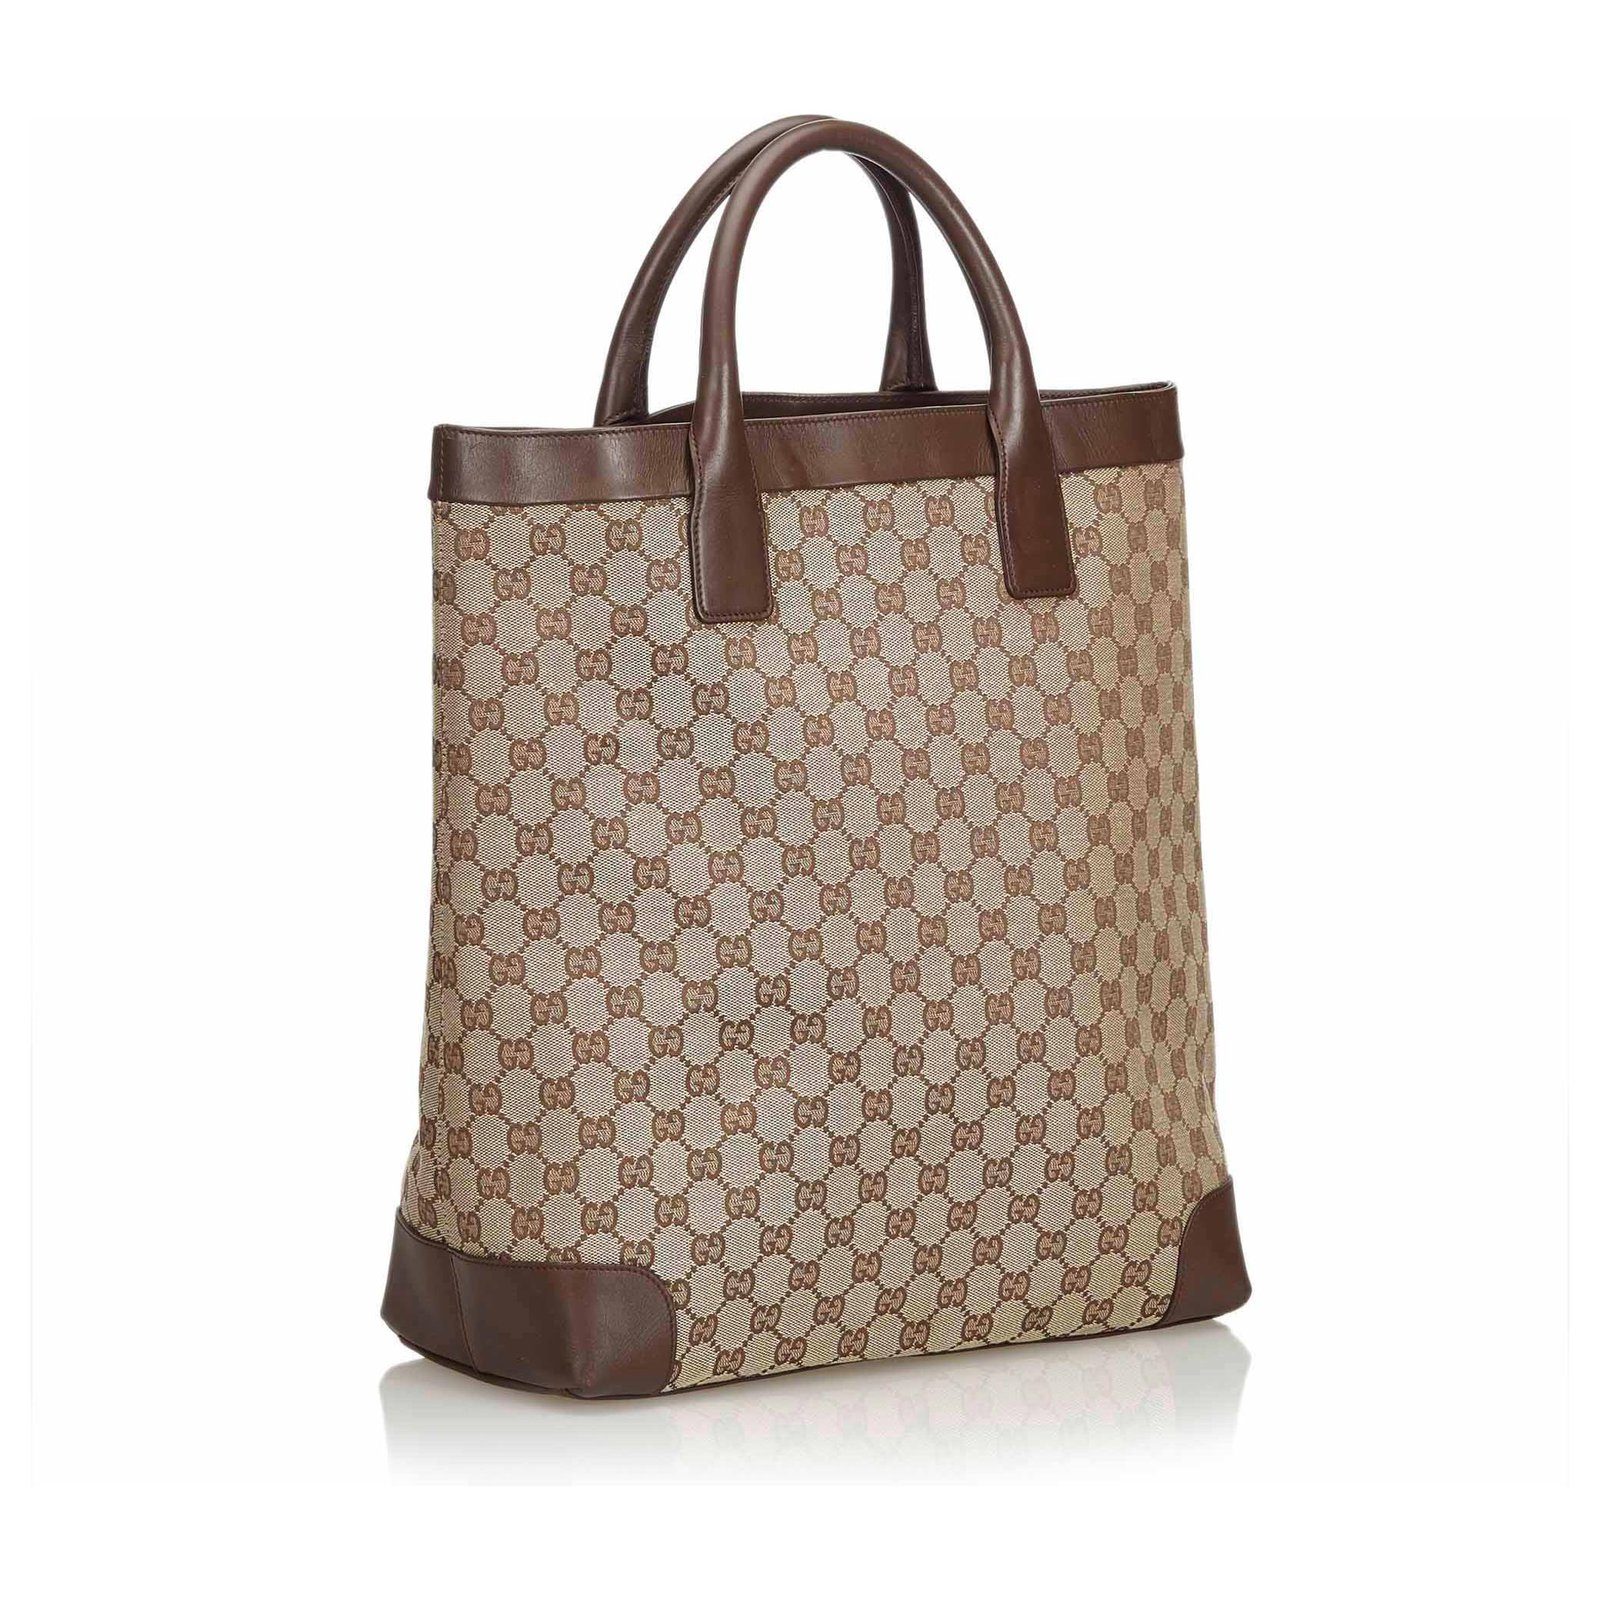 339beadf777 Gucci GG Jacquard Tote Bag Totes Leather,Other,Cloth Brown,Beige ...